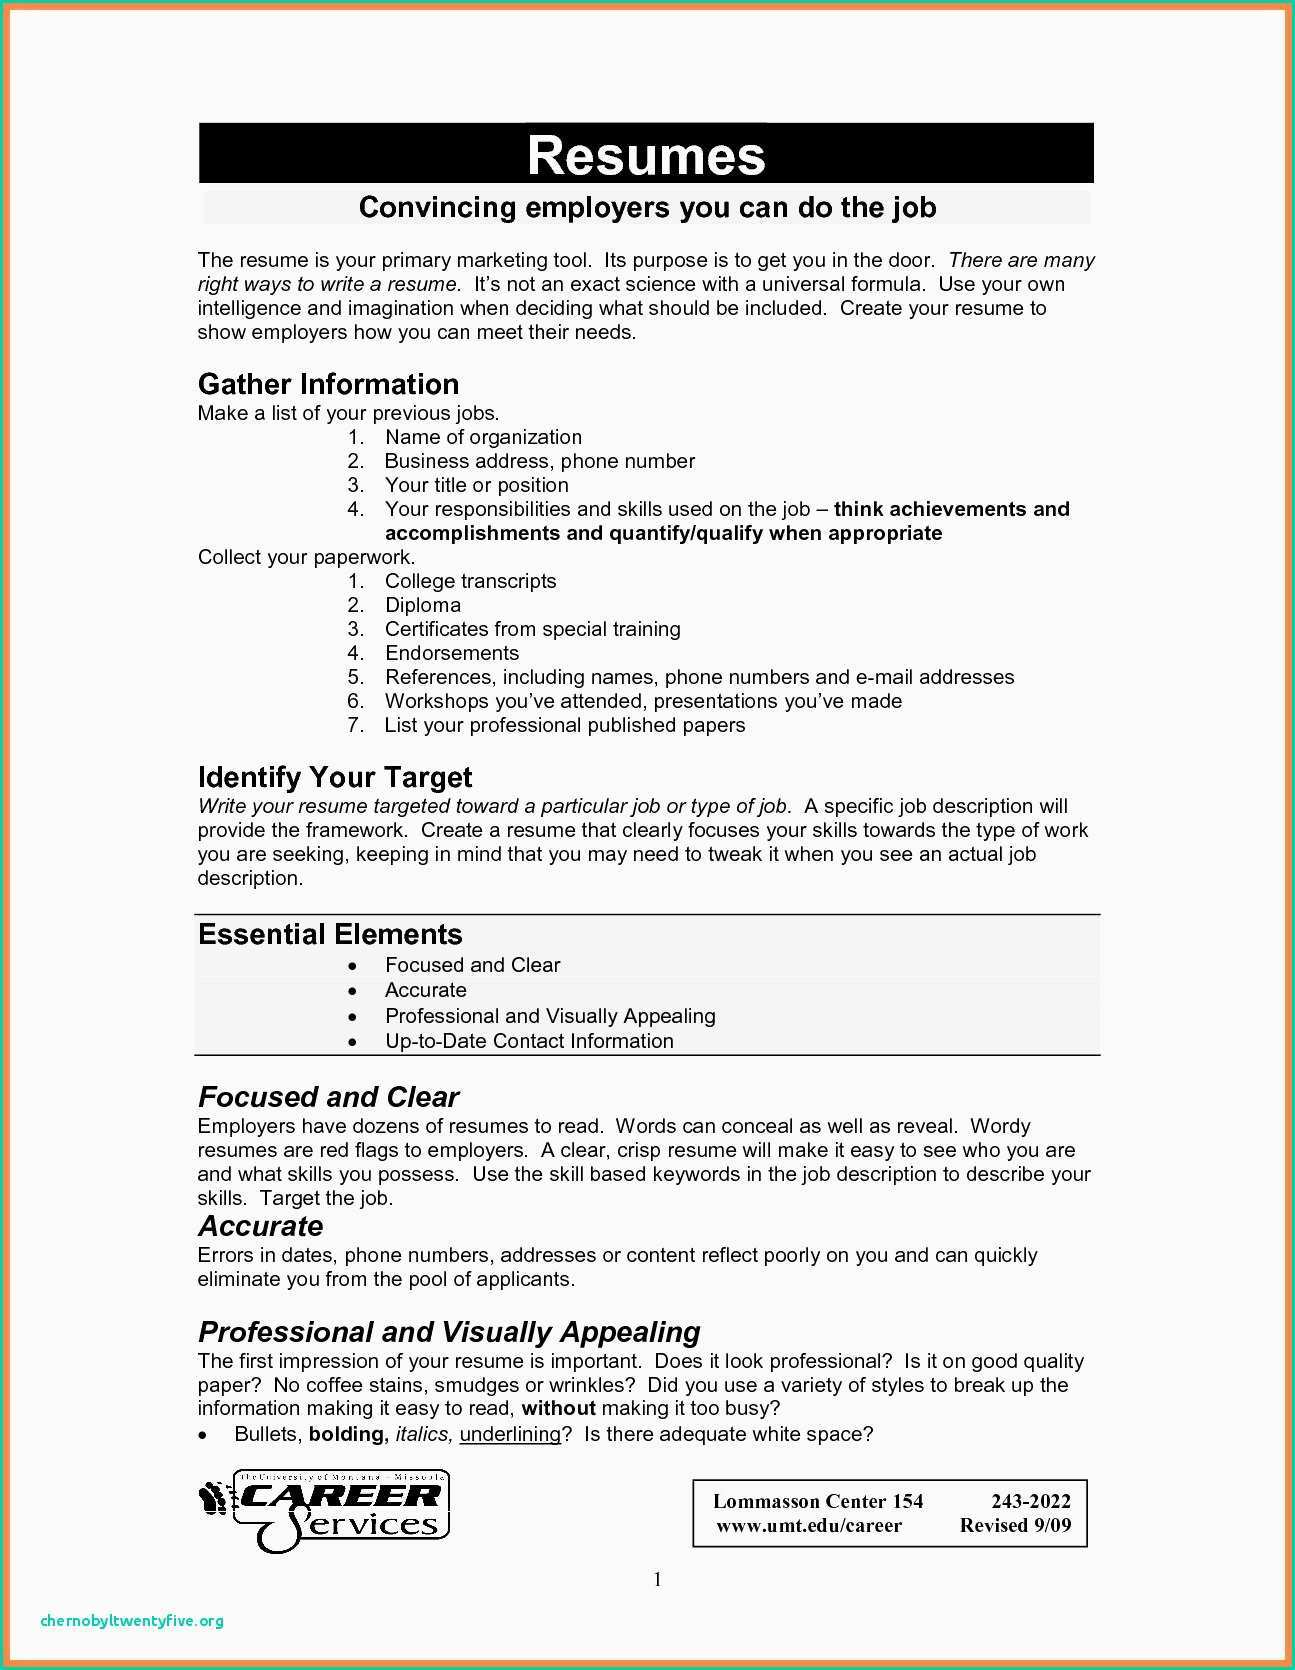 Create Your Own Resume - How to Do Resume How to Make Resume Awesome Resume for It Job Fresh